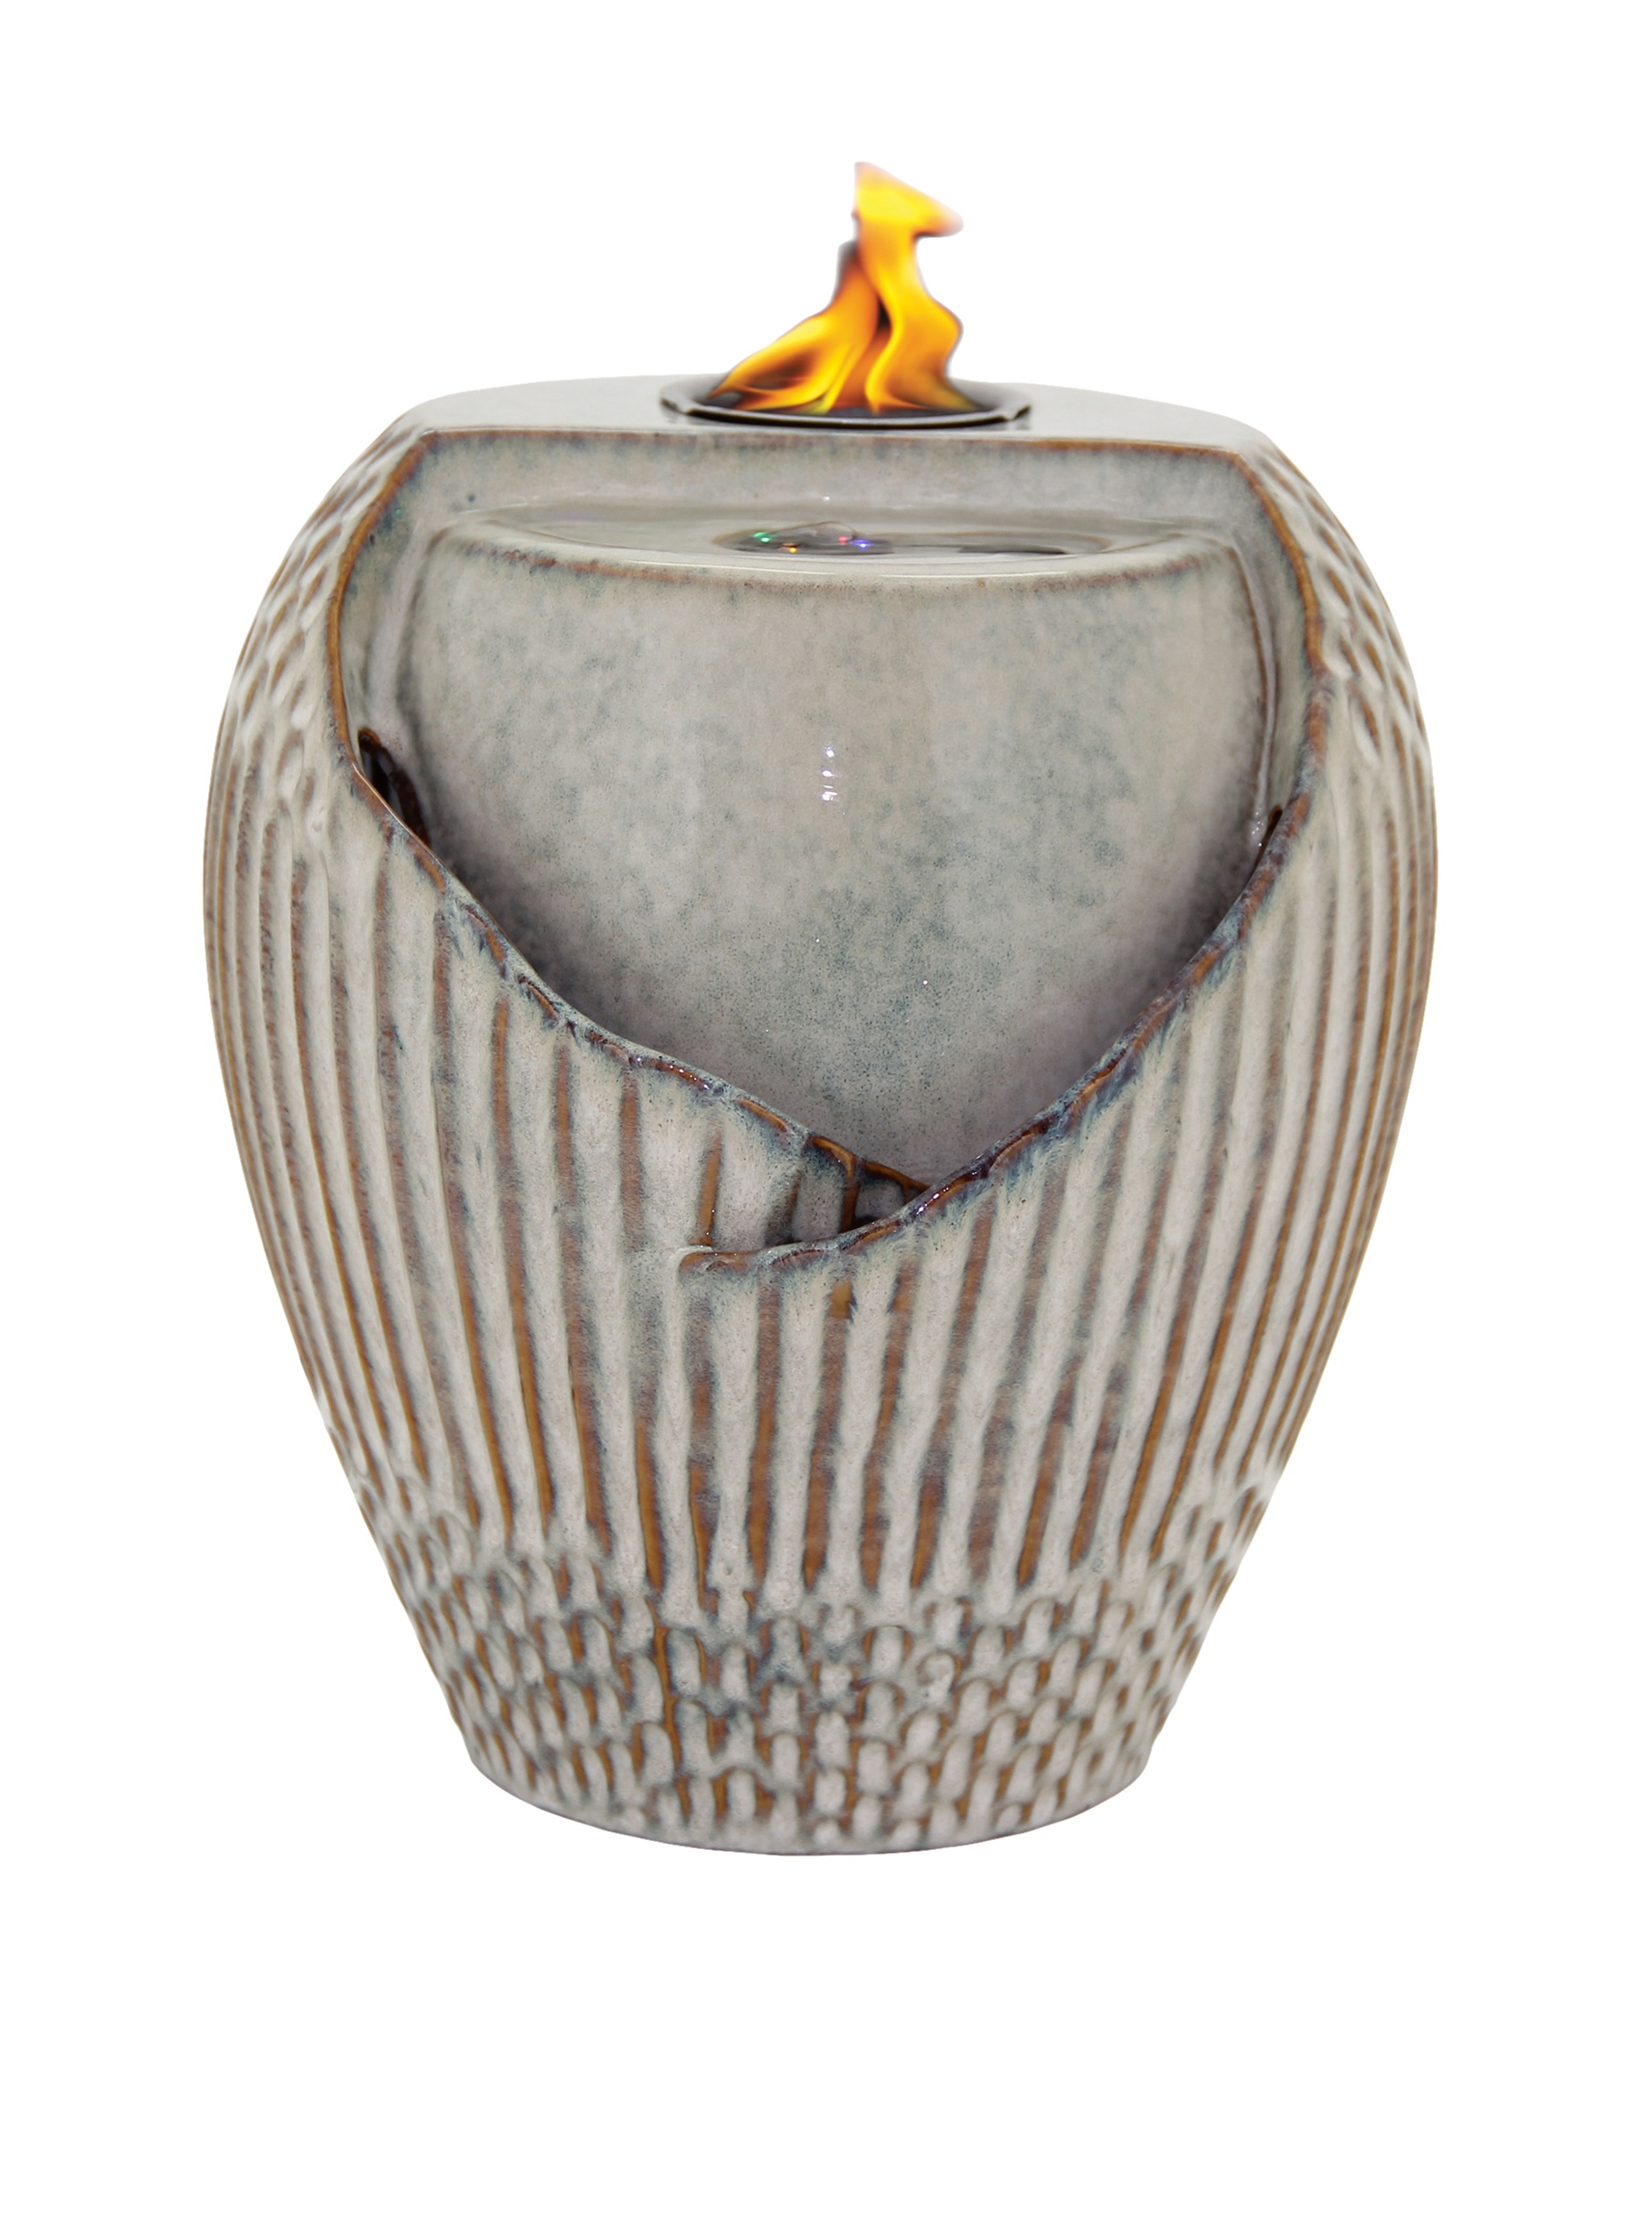 Pacific Décor Osaka LED Flame Fountain, 10 by 10 by 12-Inch, Sand